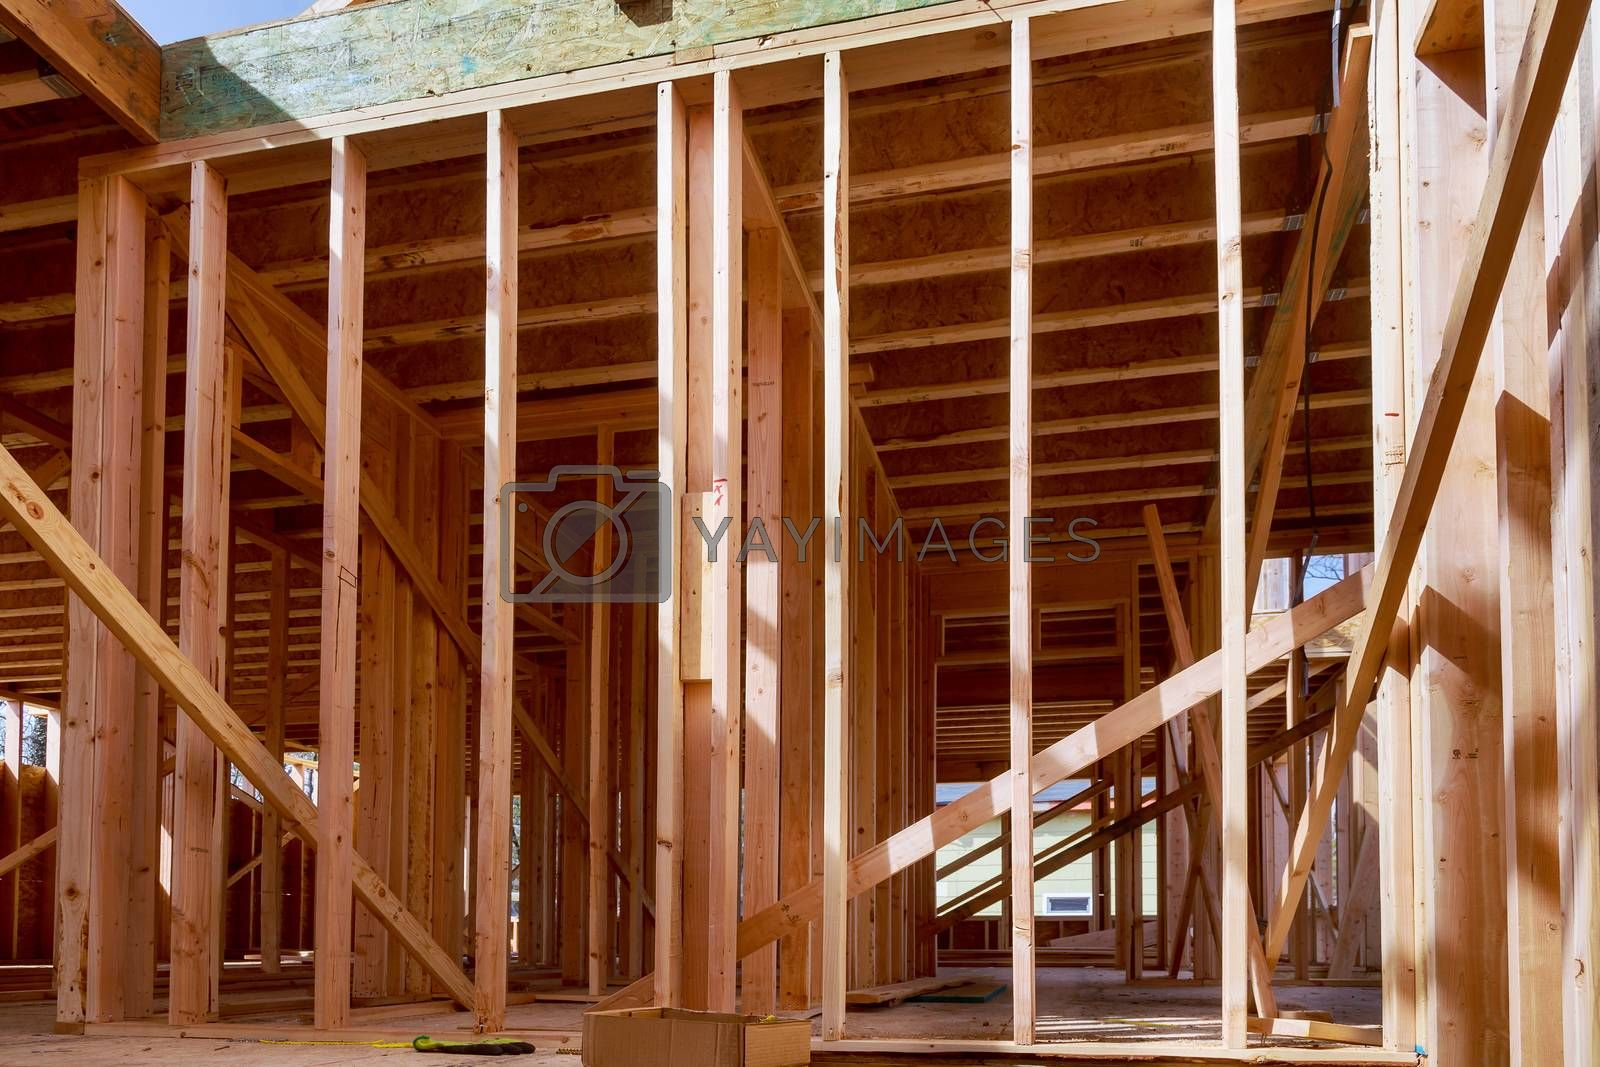 Beams the walls frame home under construction residential house in American